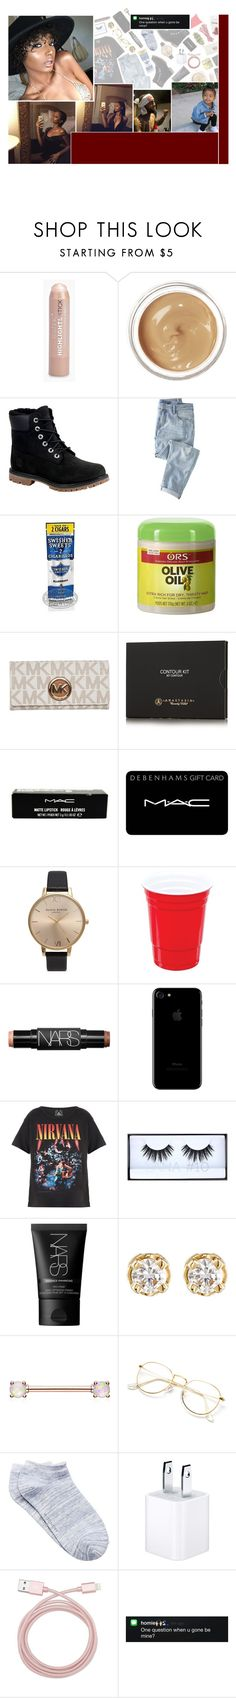 """ she like them thug n-ggas .. i can tell, we throw that money up, i got your ass up in the air "" by dis-trict ❤ liked on Polyvore featuring Boohoo, Chantecaille, Timberland, Wrap, MICHAEL Michael Kors, Anastasia Beverly Hills, MAC Cosmetics, Olivia Burton, NARS Cosmetics and Trunk LTD"